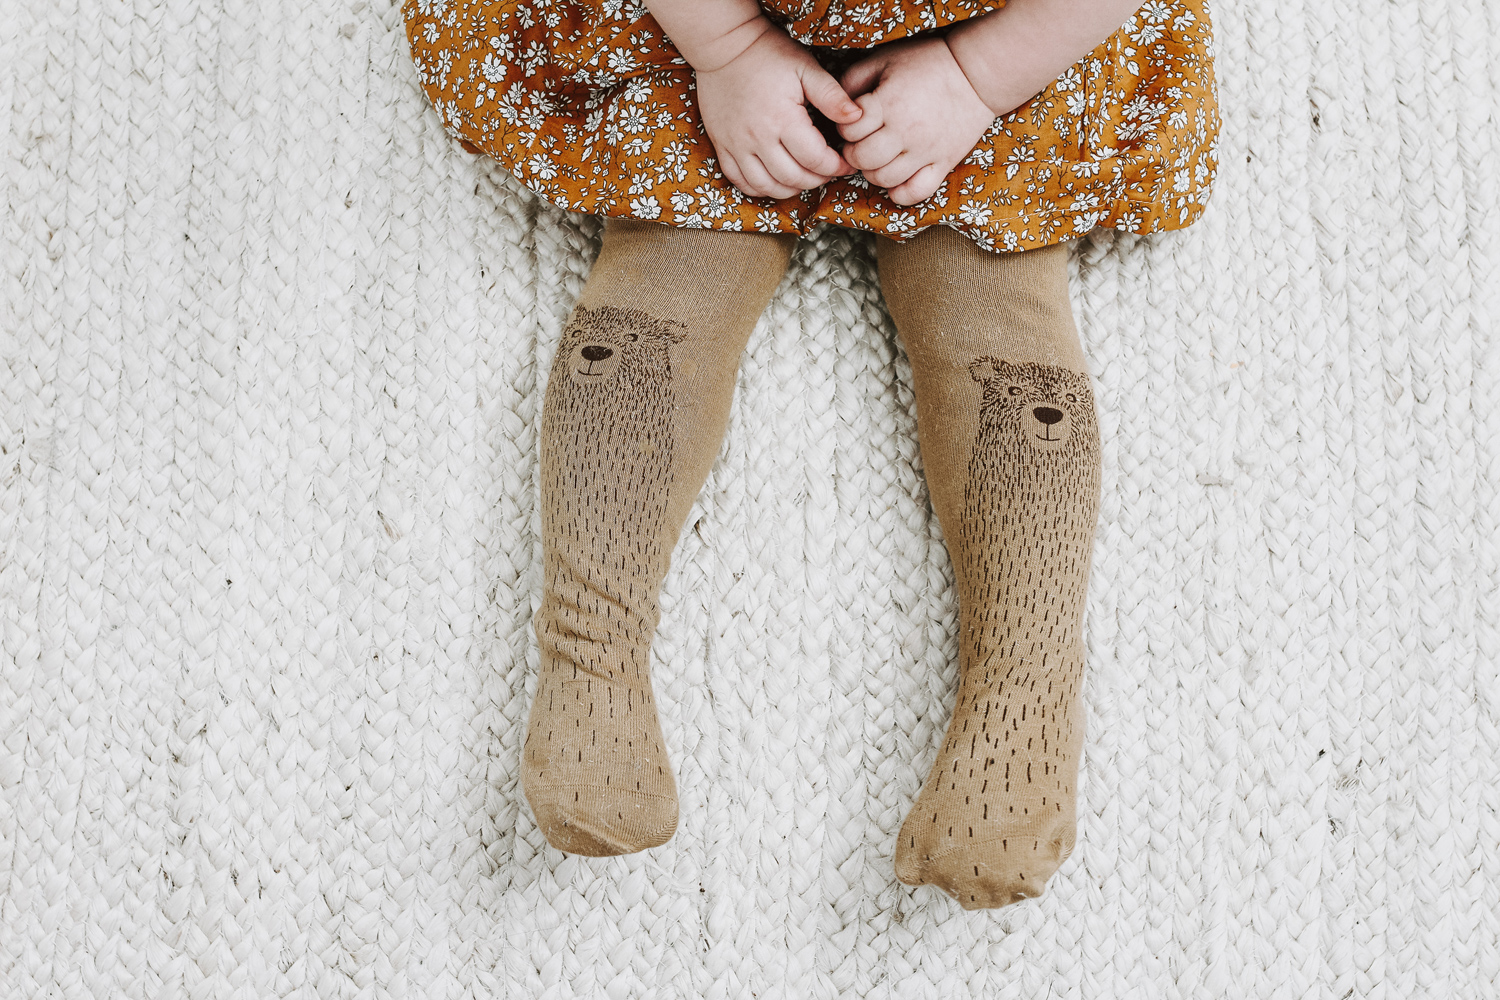 Brown bear tights by Virivee